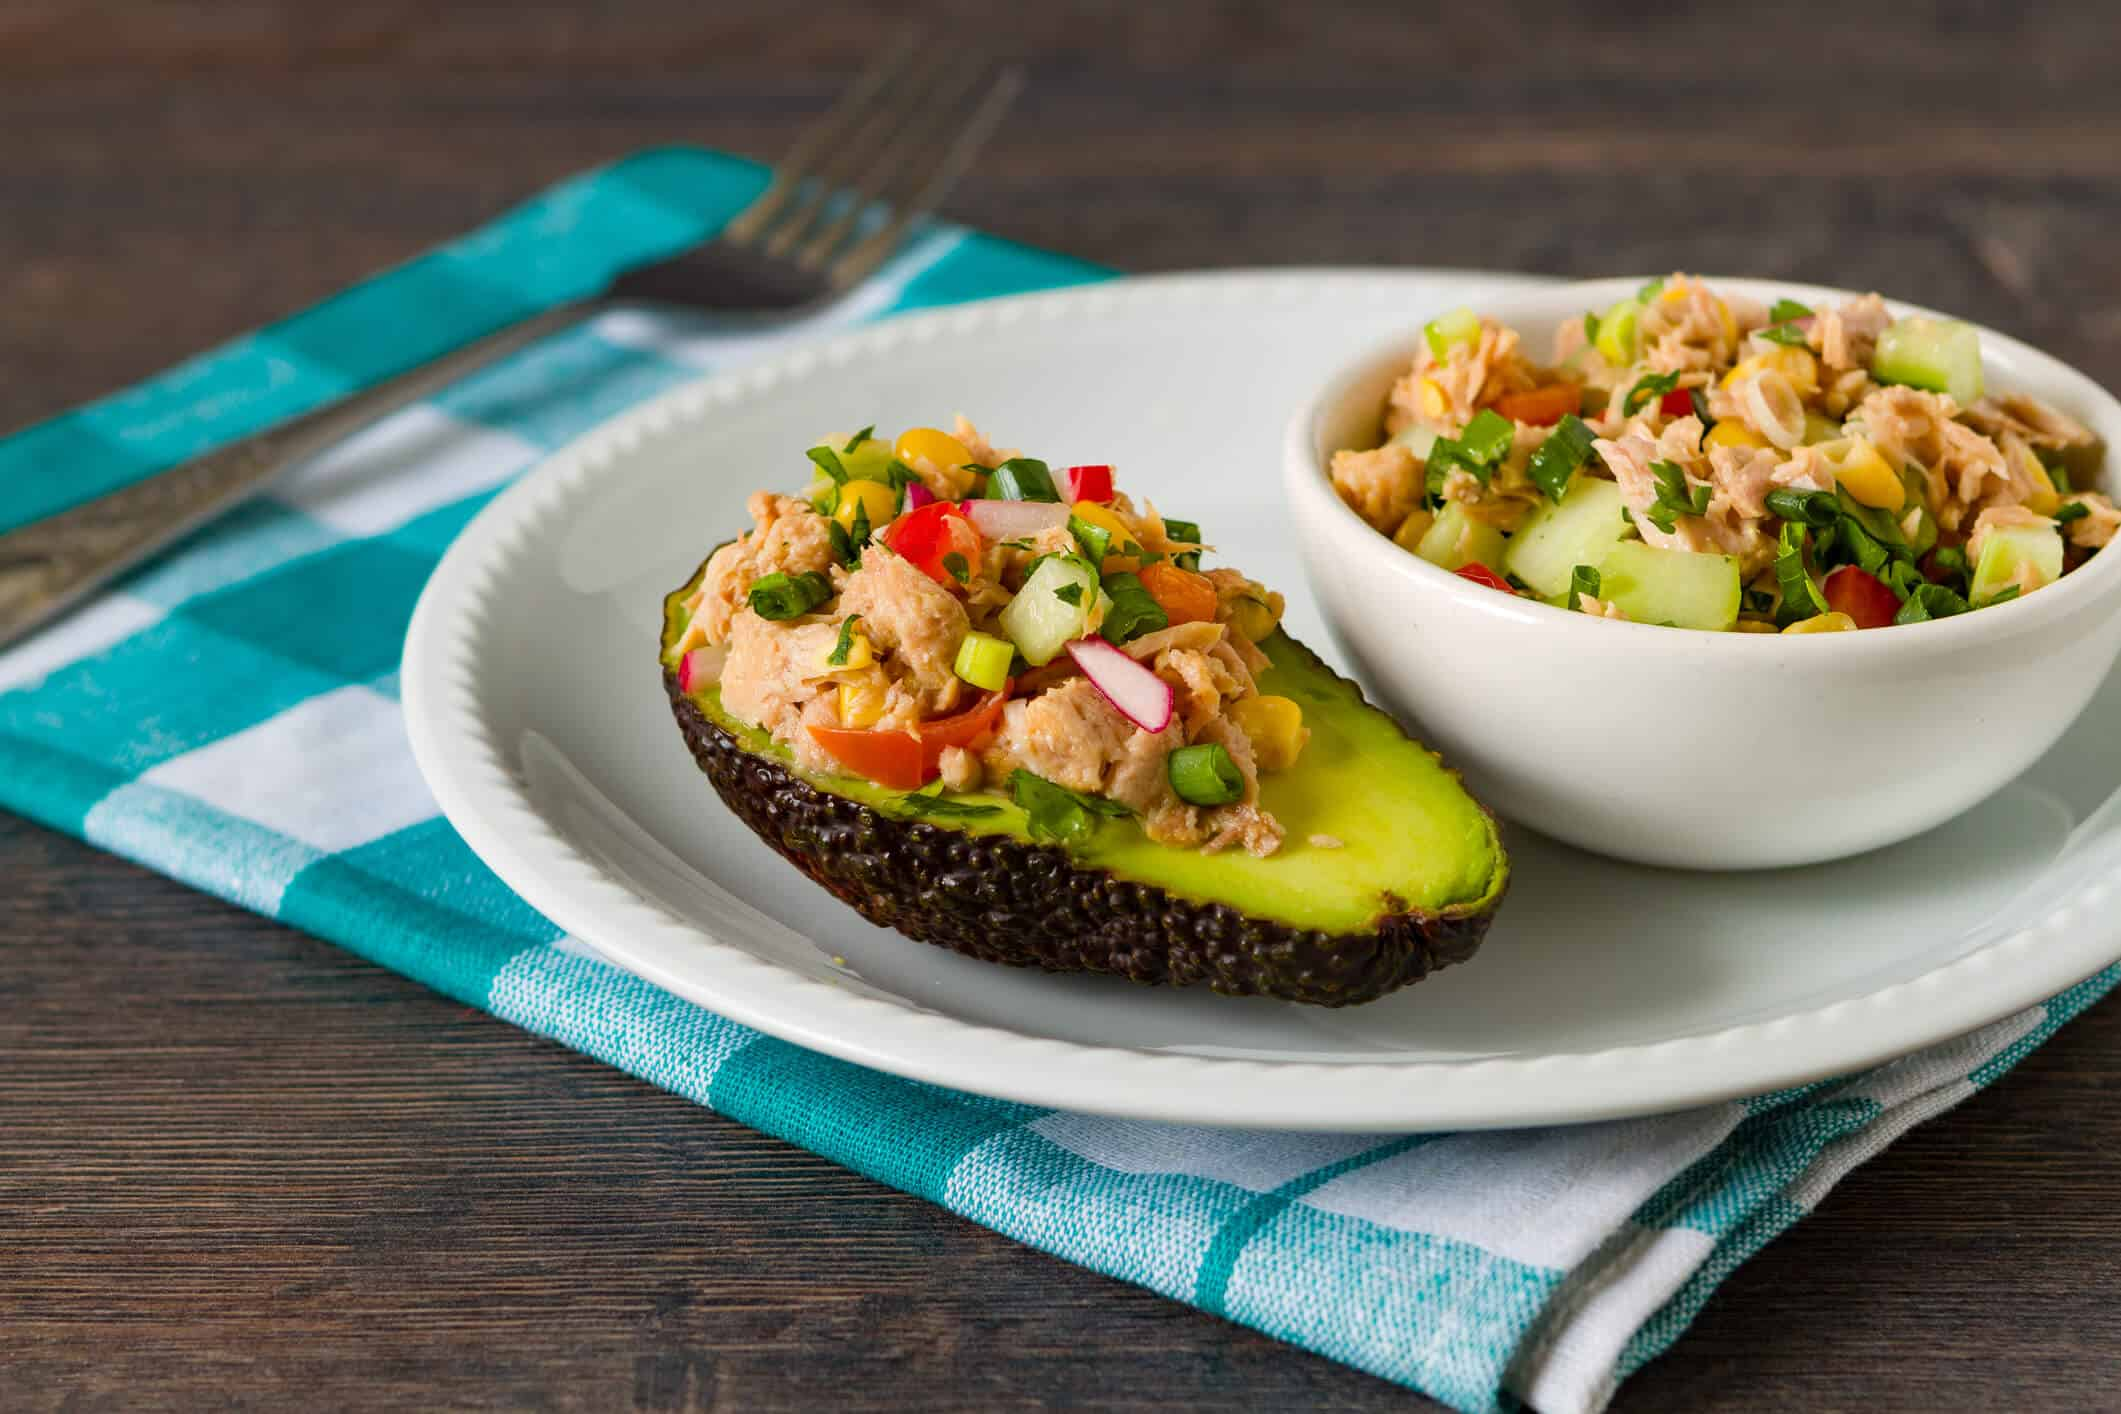 Curried Chicken Salad Stuffed Avocado